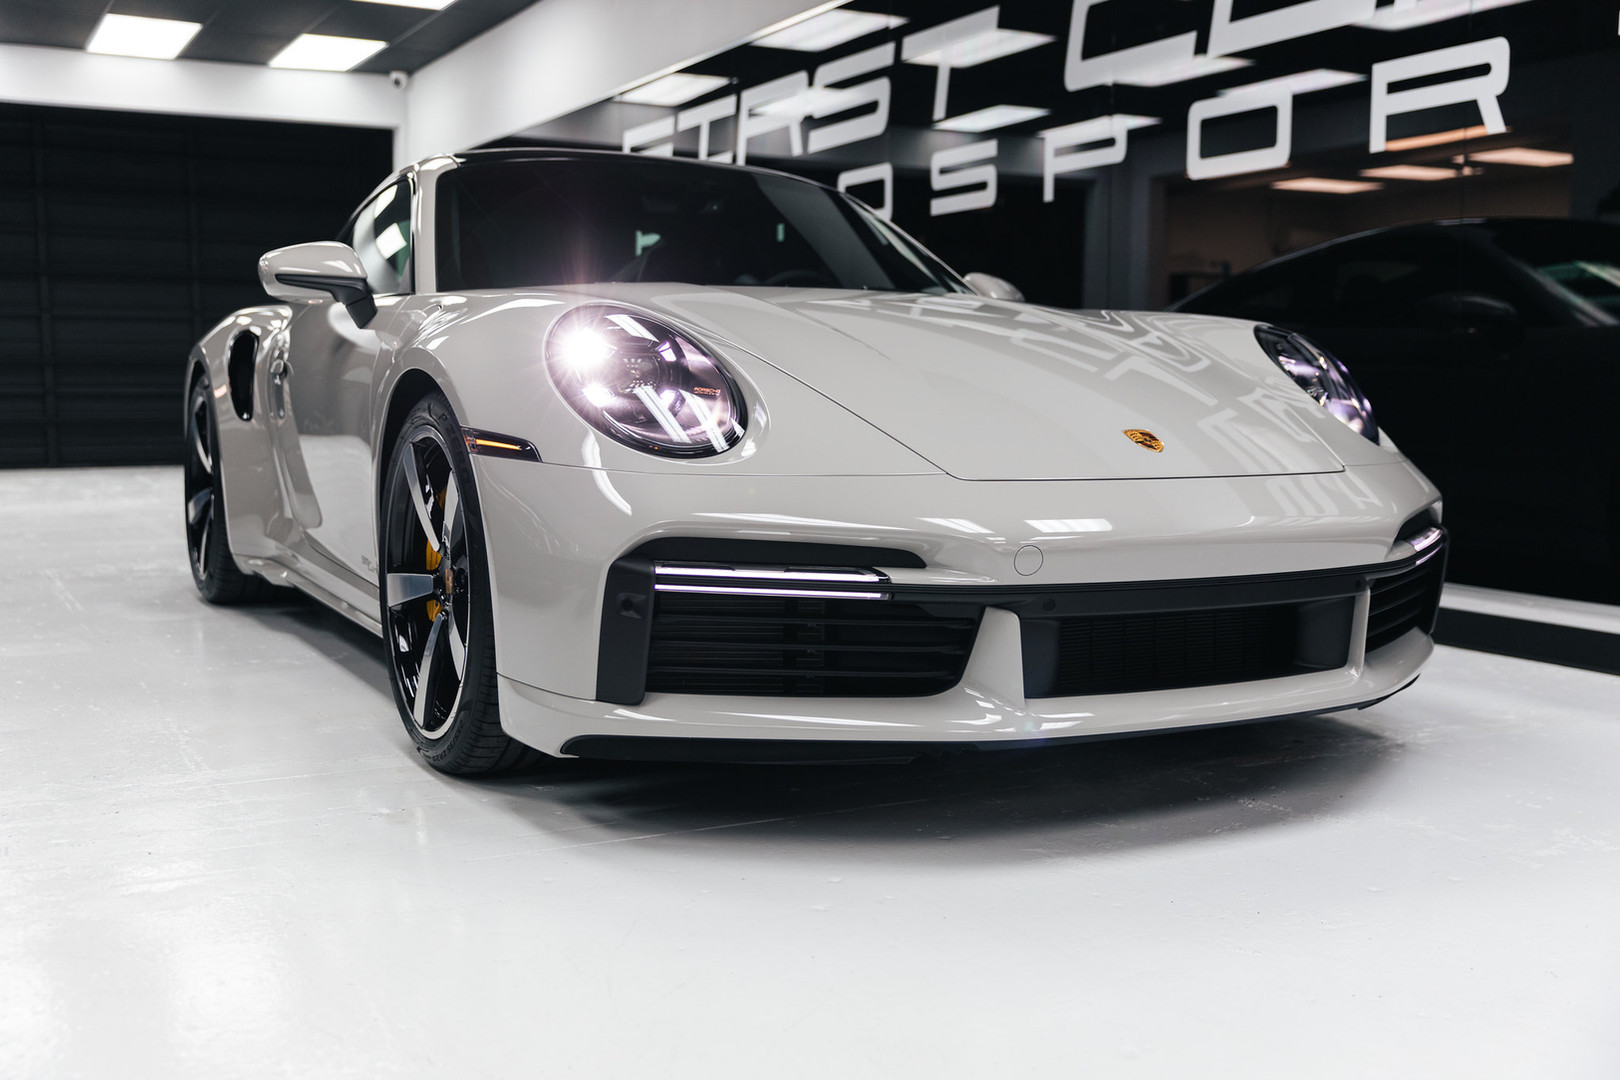 Porsche Turbo S 2021 paint protection fi